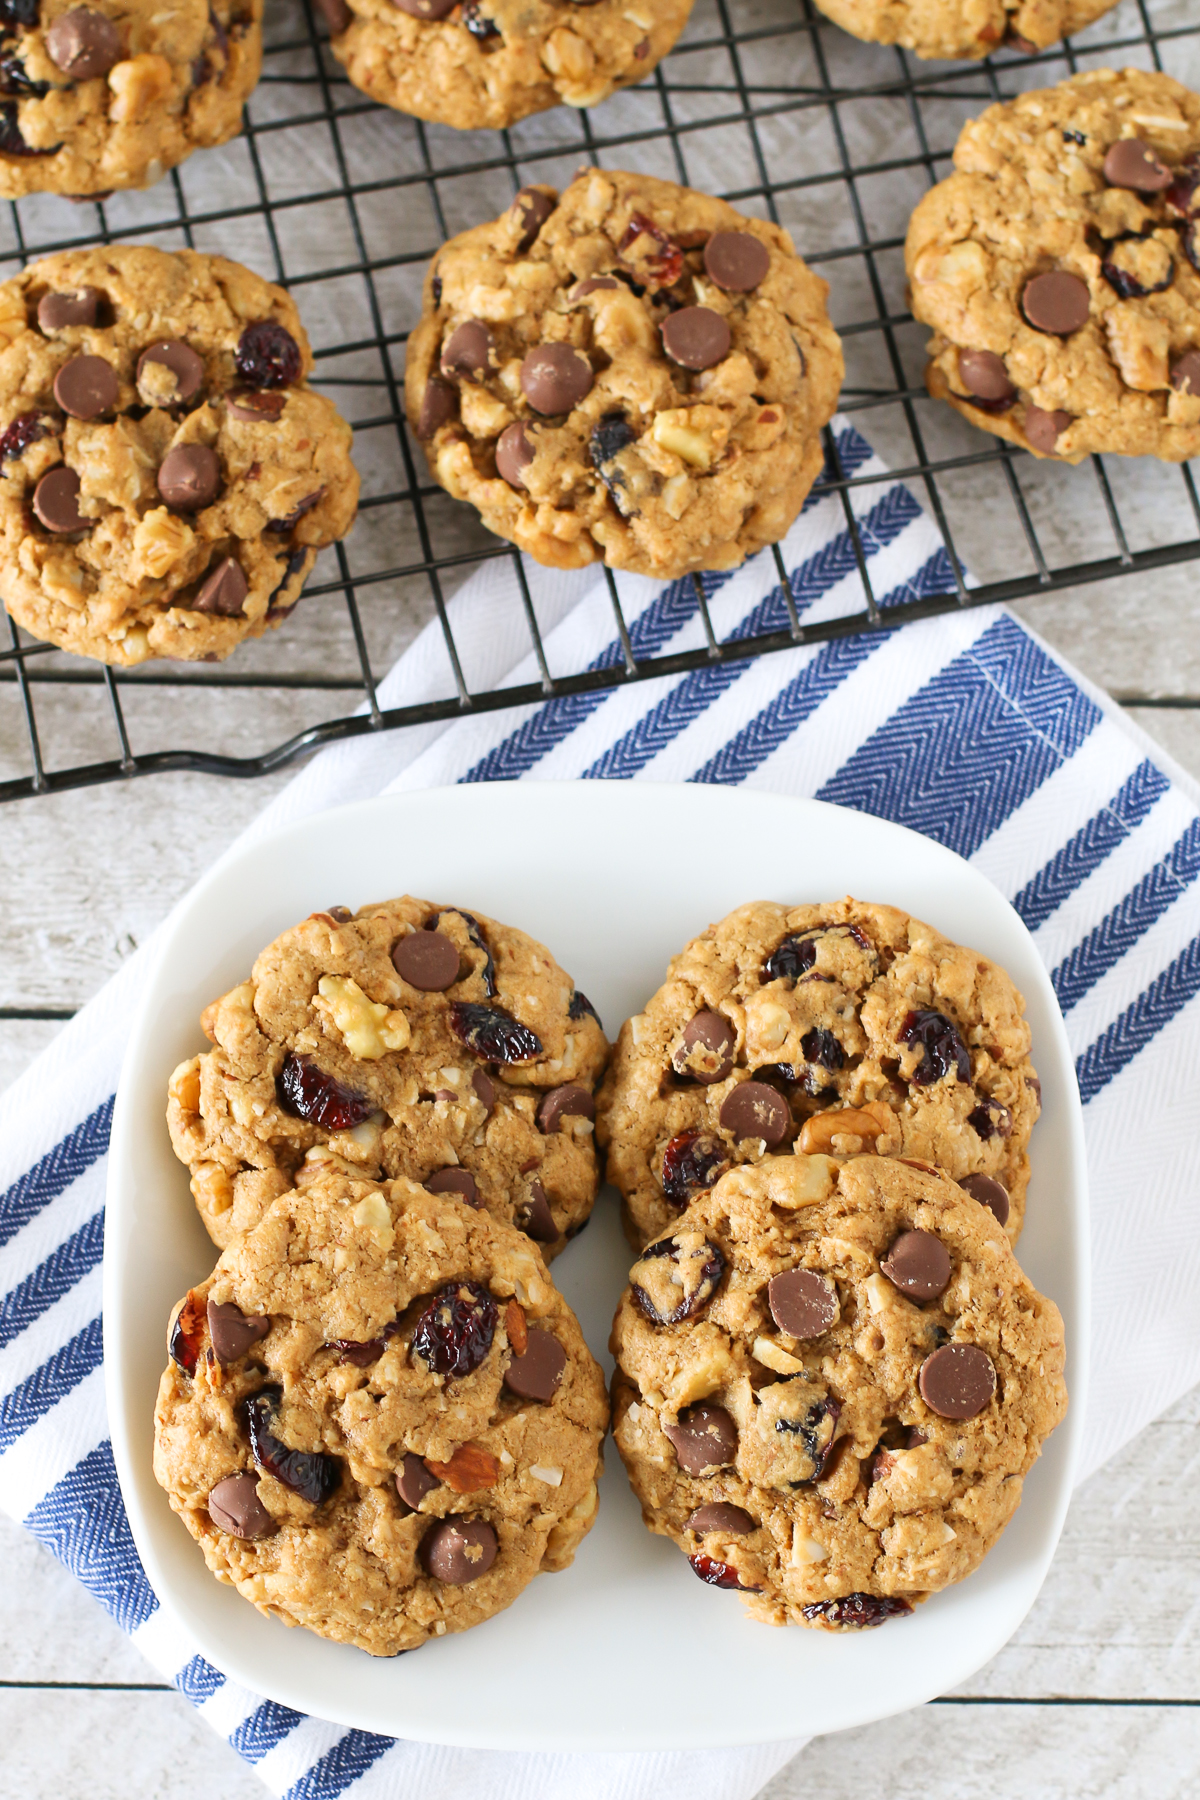 Gluten Free Vegan Trail Mix Cookies. These cookies are pack with nuts, dried fruit, coconut and of course, chocolate chips!